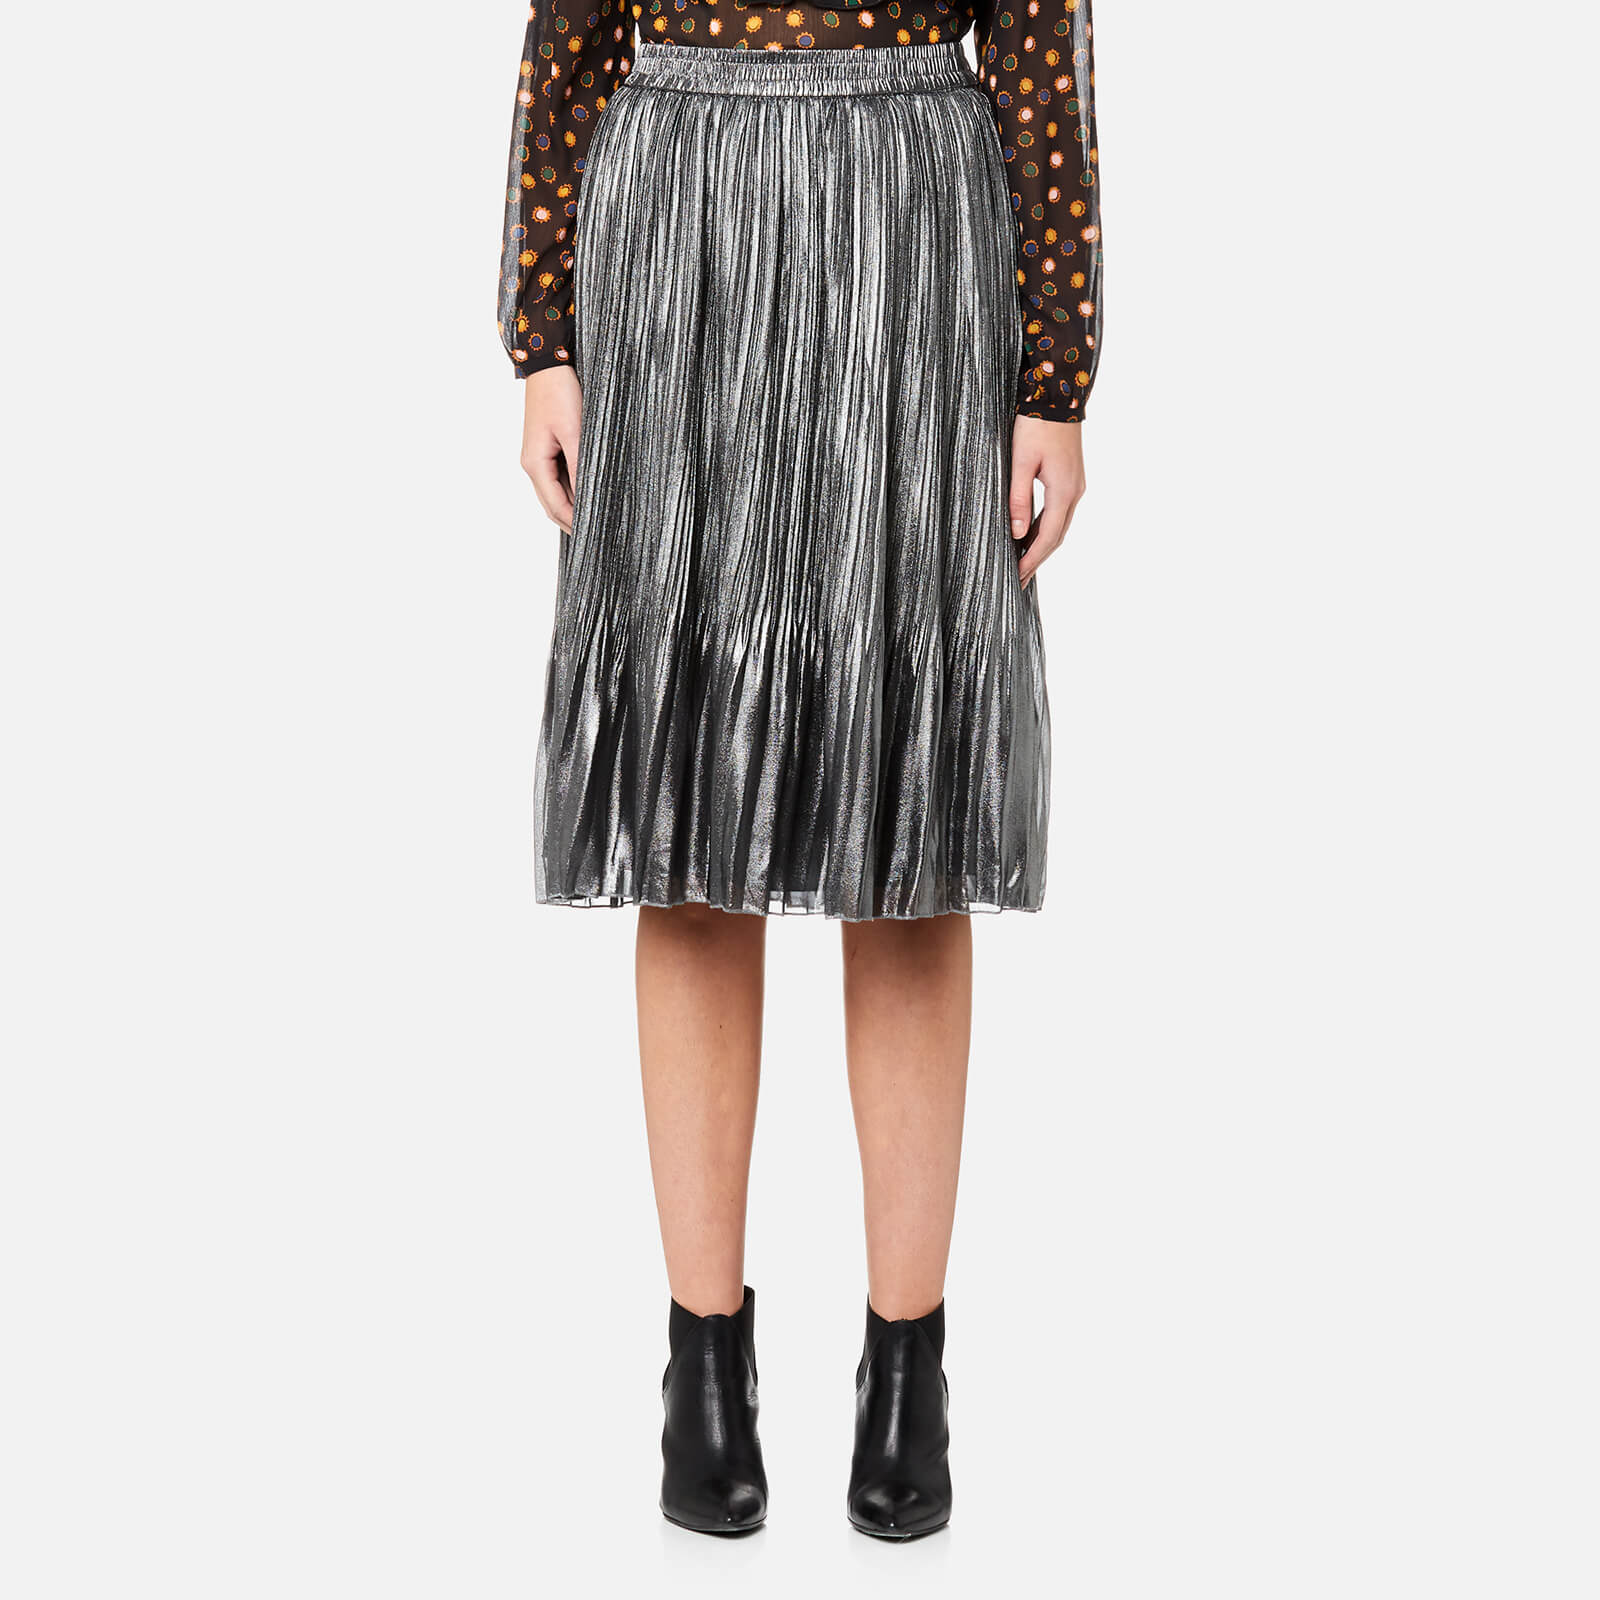 c73bd5372e Maison Scotch Women's Pleated Skirt - Silver - Free UK Delivery over £50